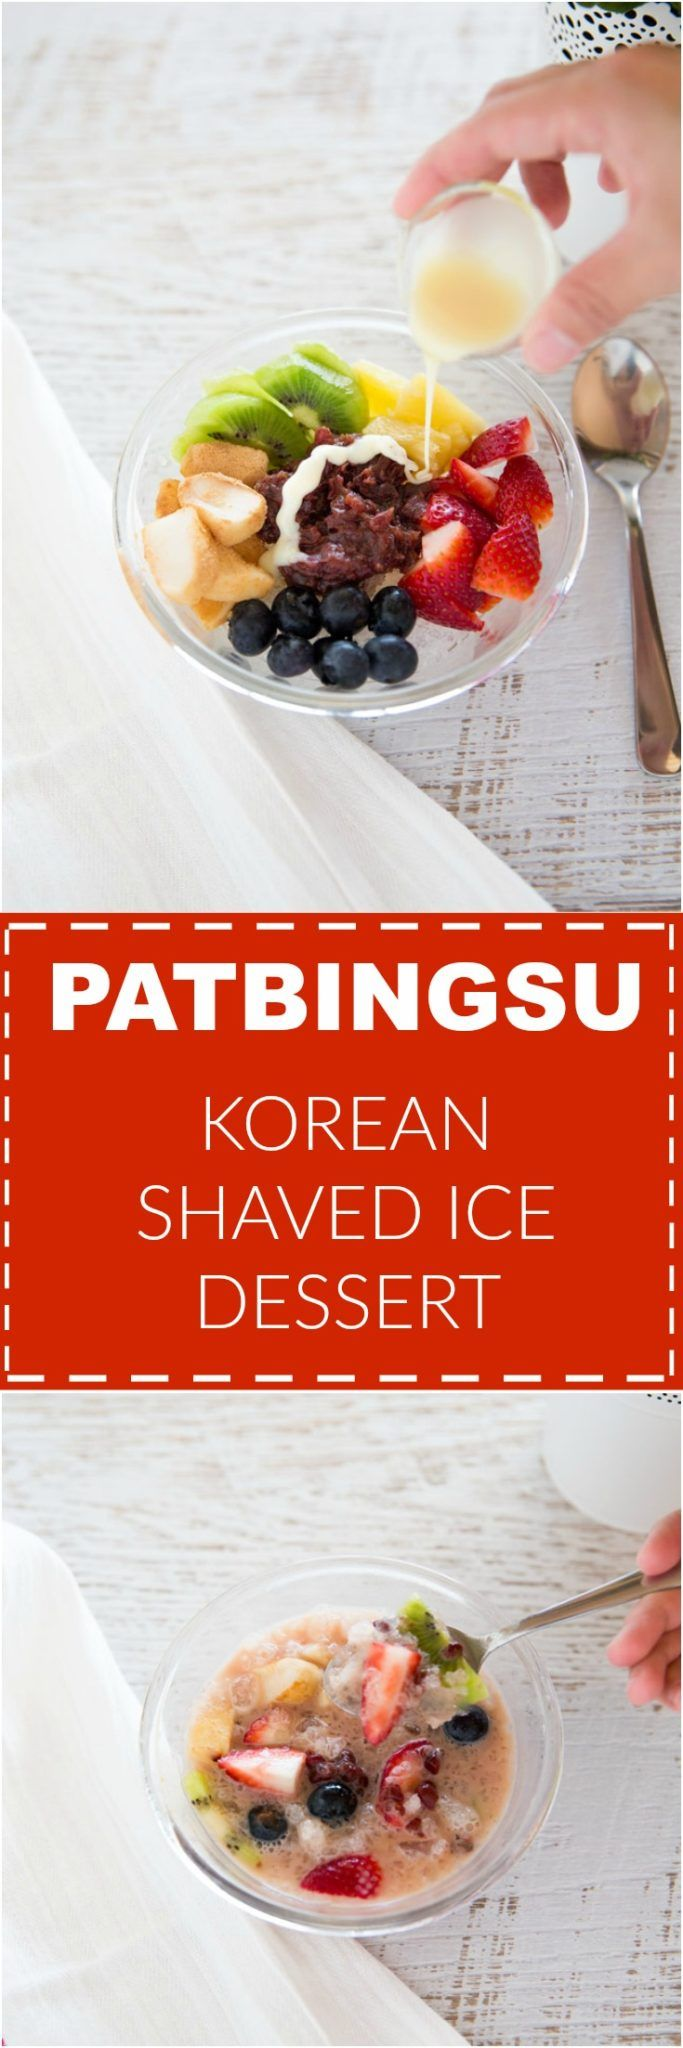 Get ready for summer with this perfect Korean summer dessert - Patbingsu! It's Korean shaved ice dessert topped with fruit, red bean paste and sweet condensed milk! | MyKoreanKitchen.com via @mykoreankitchen